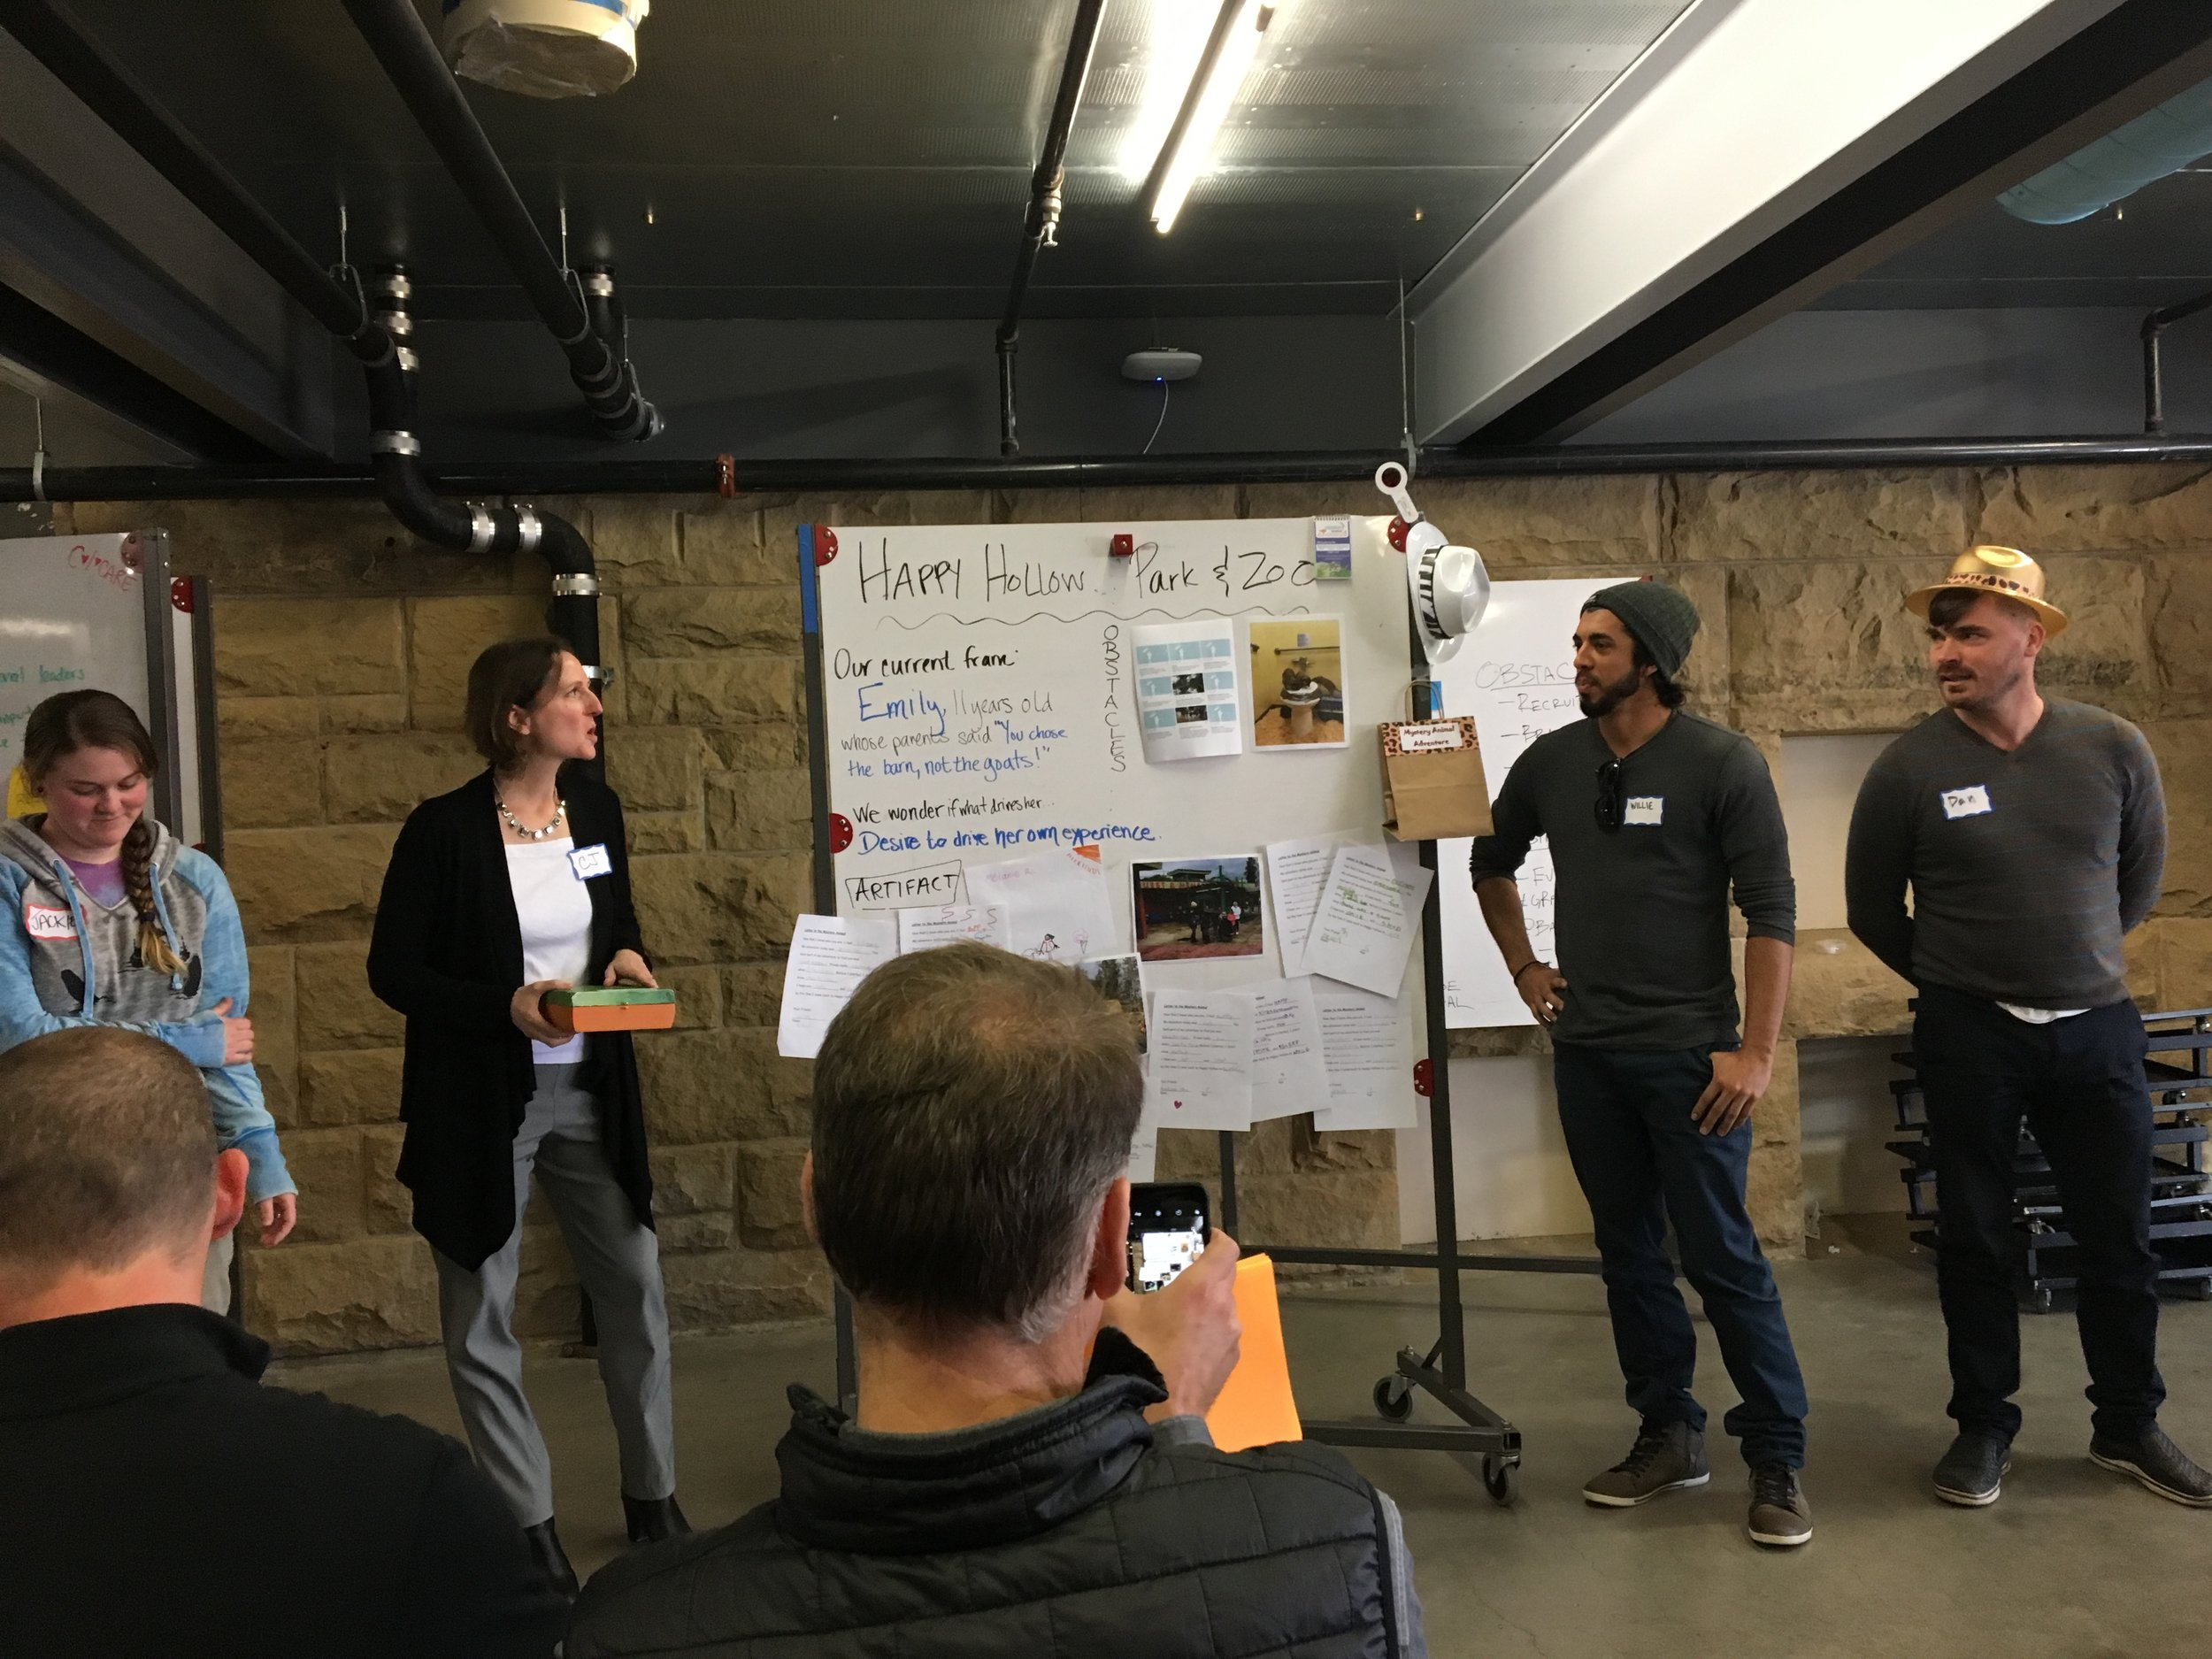 The team presents their work at the d.school!